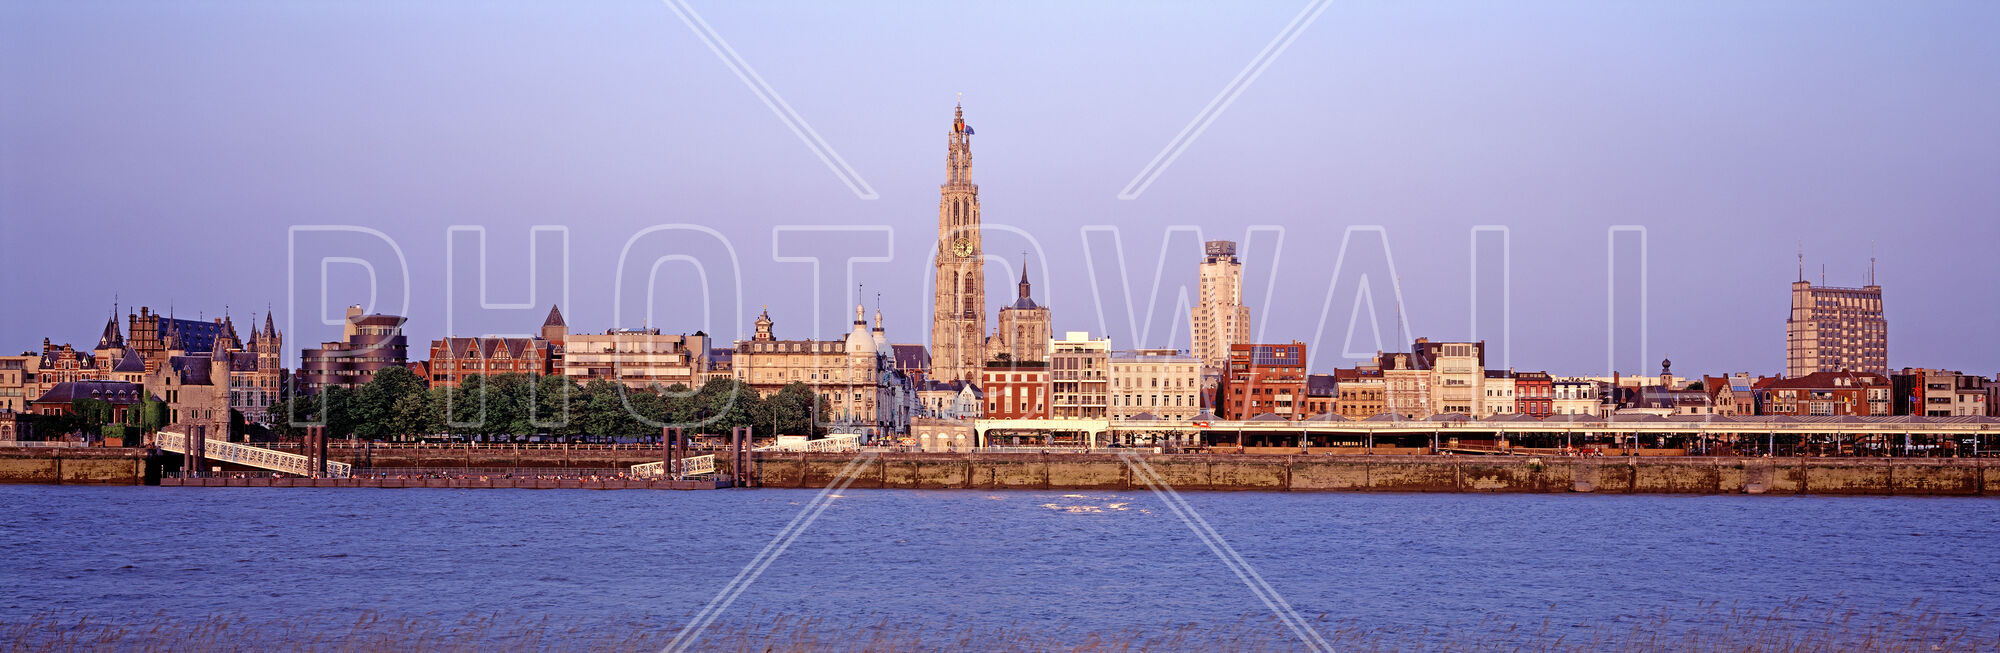 Antwerp Skyline At Dusk Inrichten Met Canvasprints Photowall